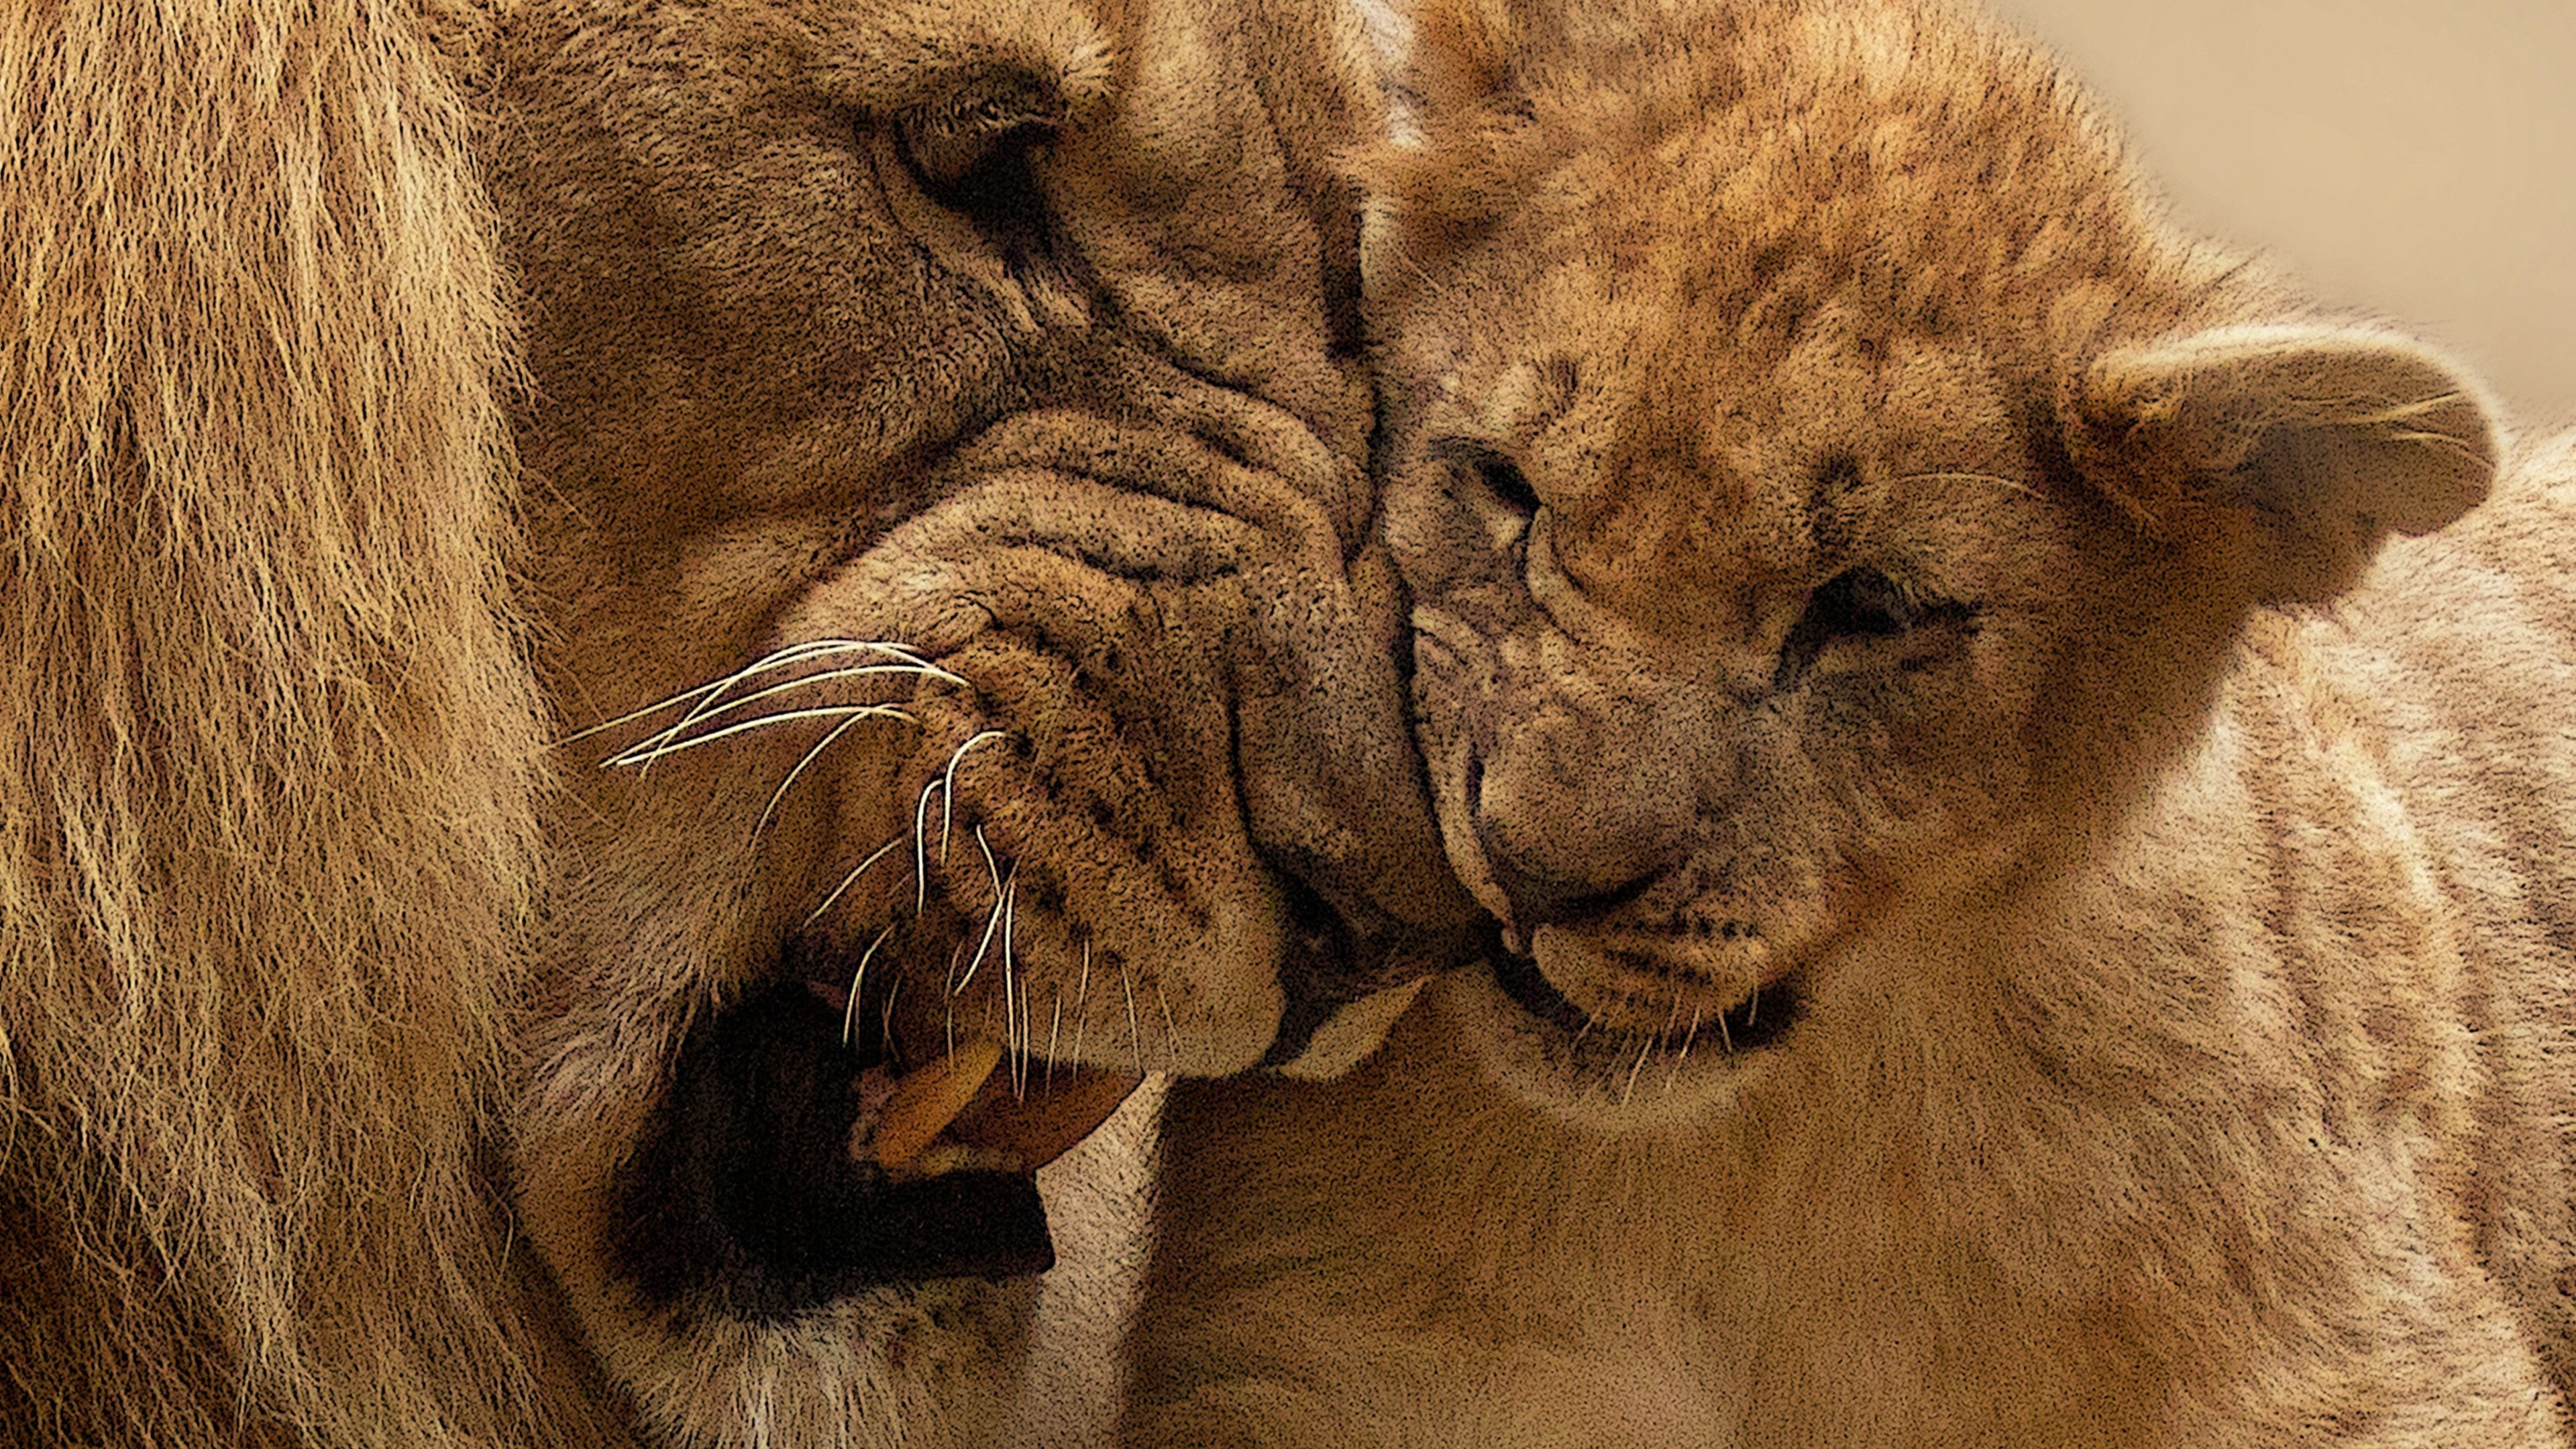 Girls Wallpapers 480x800 Lion Mother Cub Hd Animals 4k Wallpapers Images